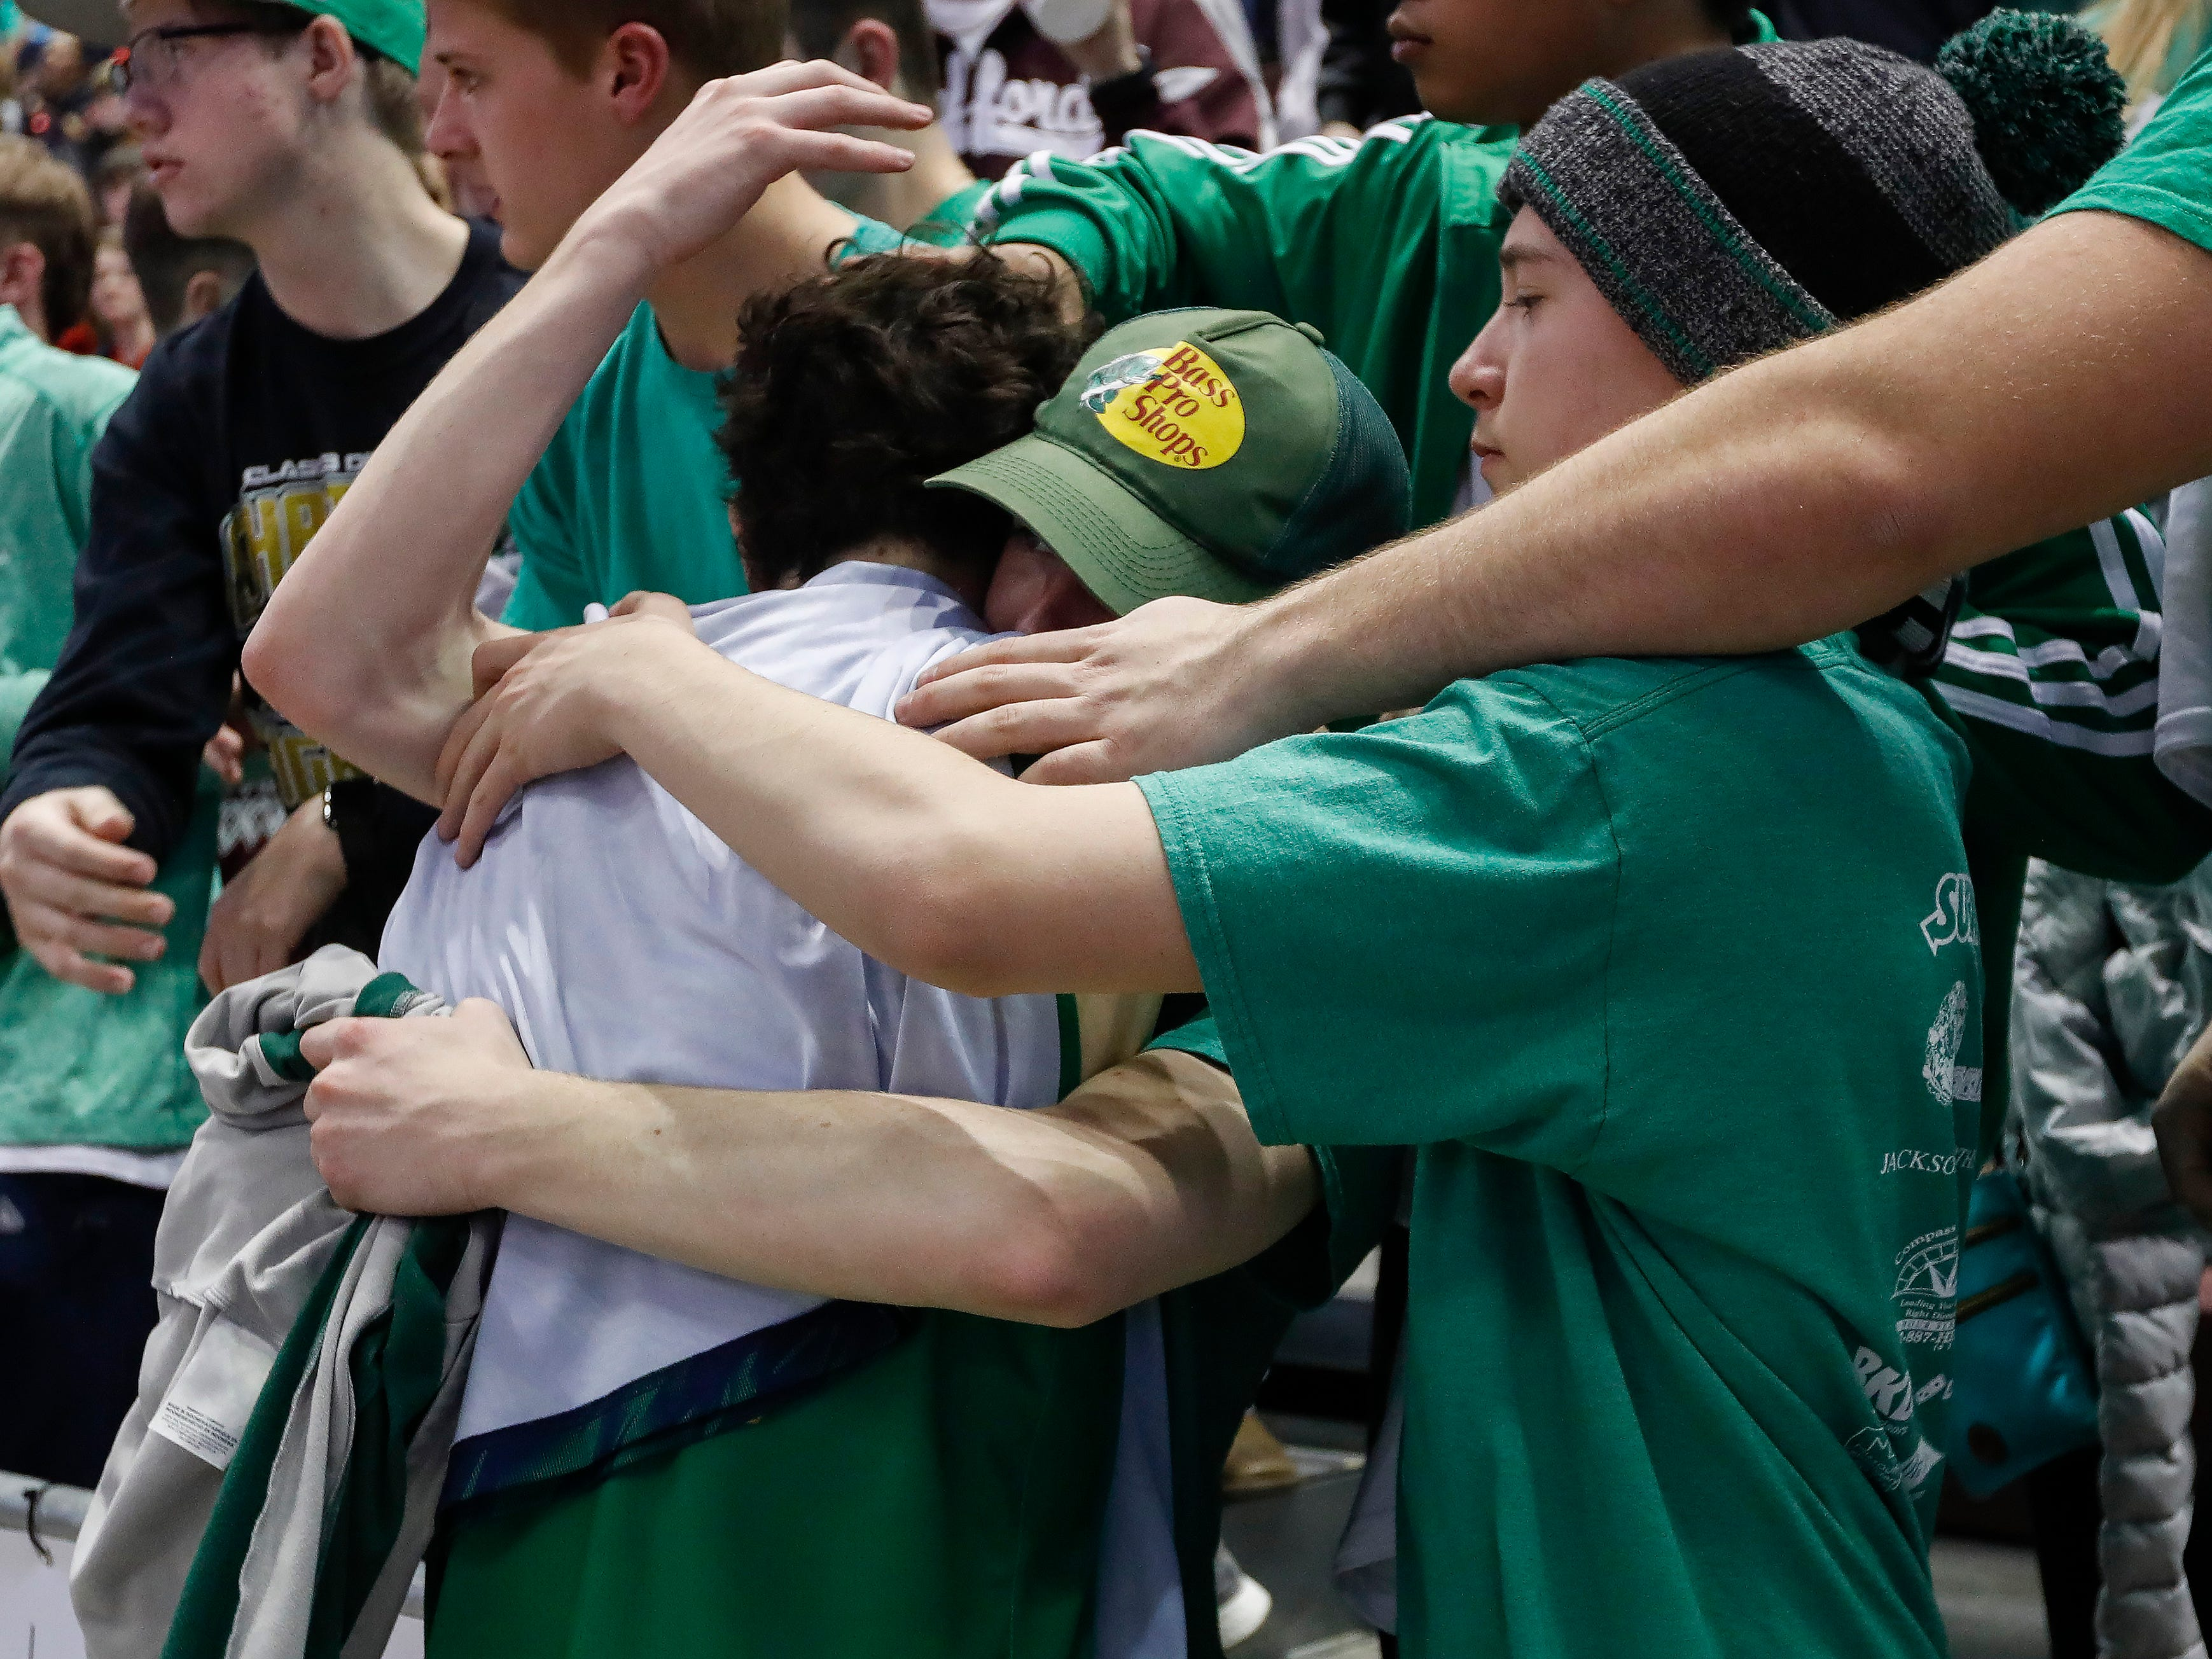 Springfield Catholic fans console Michael Manzardo after the Irish's 69-59 loss to Vashon in the Class 3 state championship game at JQH Arena on Friday, March 8, 2019.